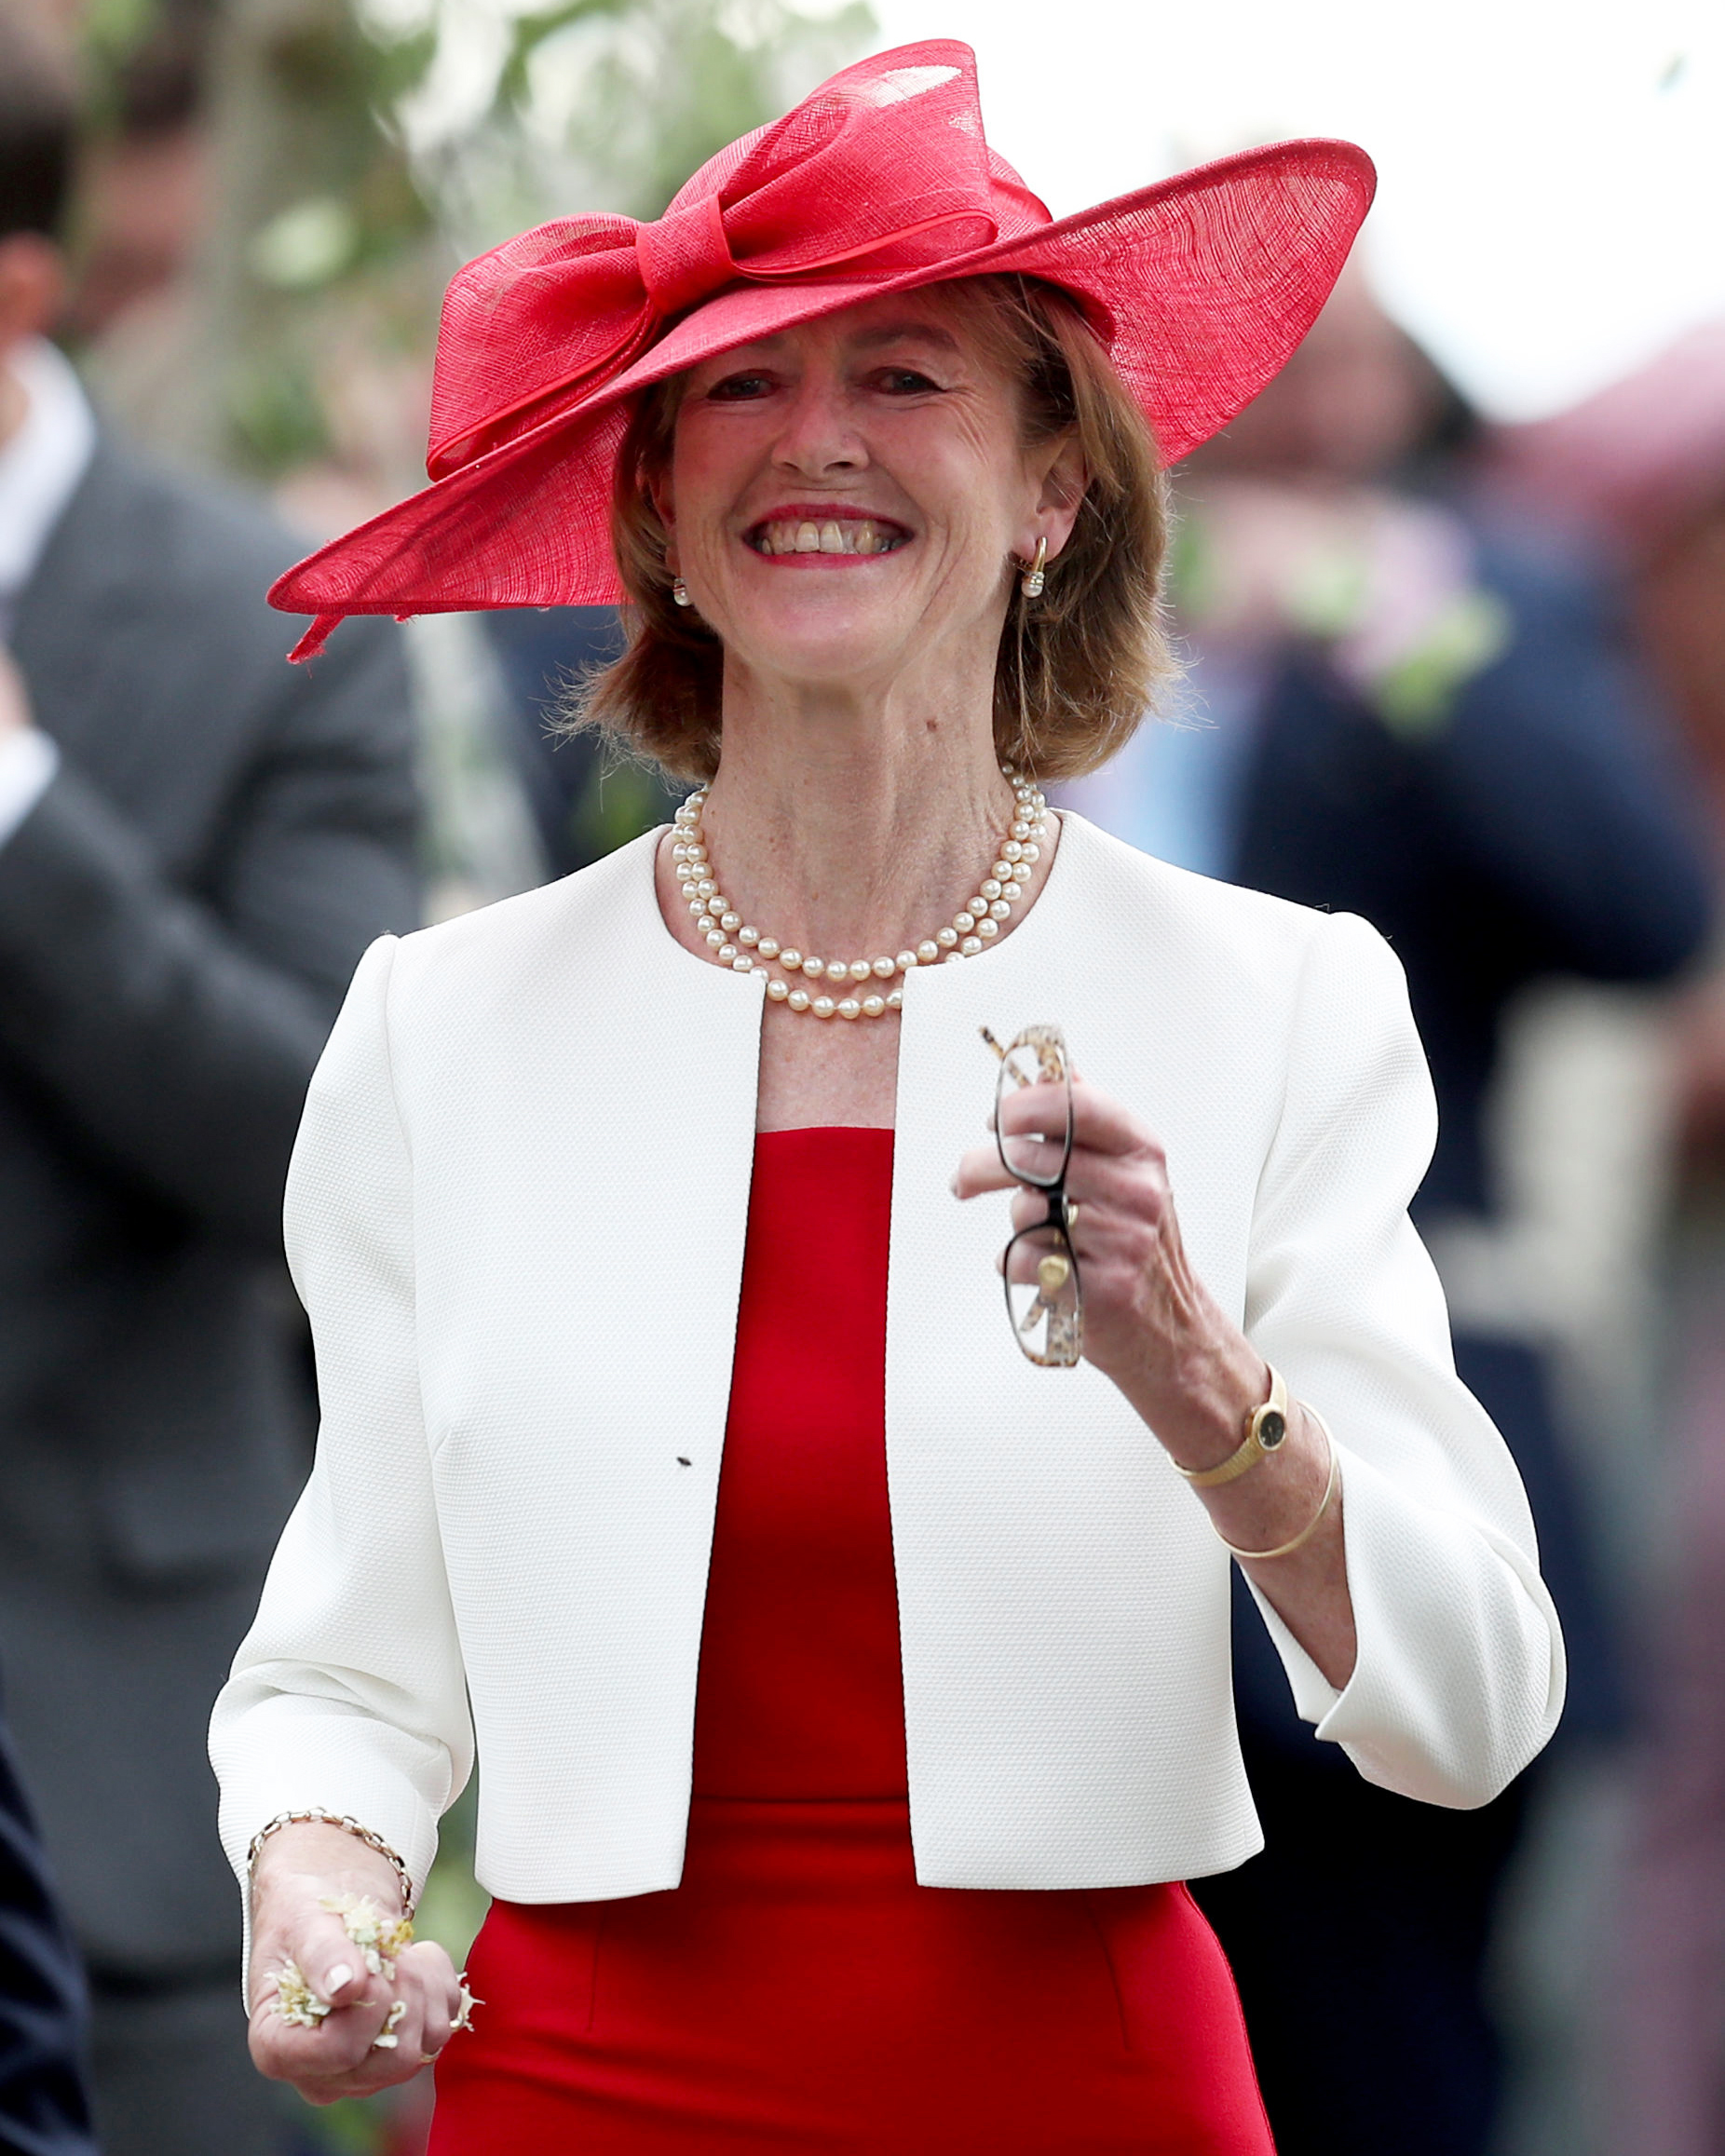 celebrity mother of the bride candida leslie red and white